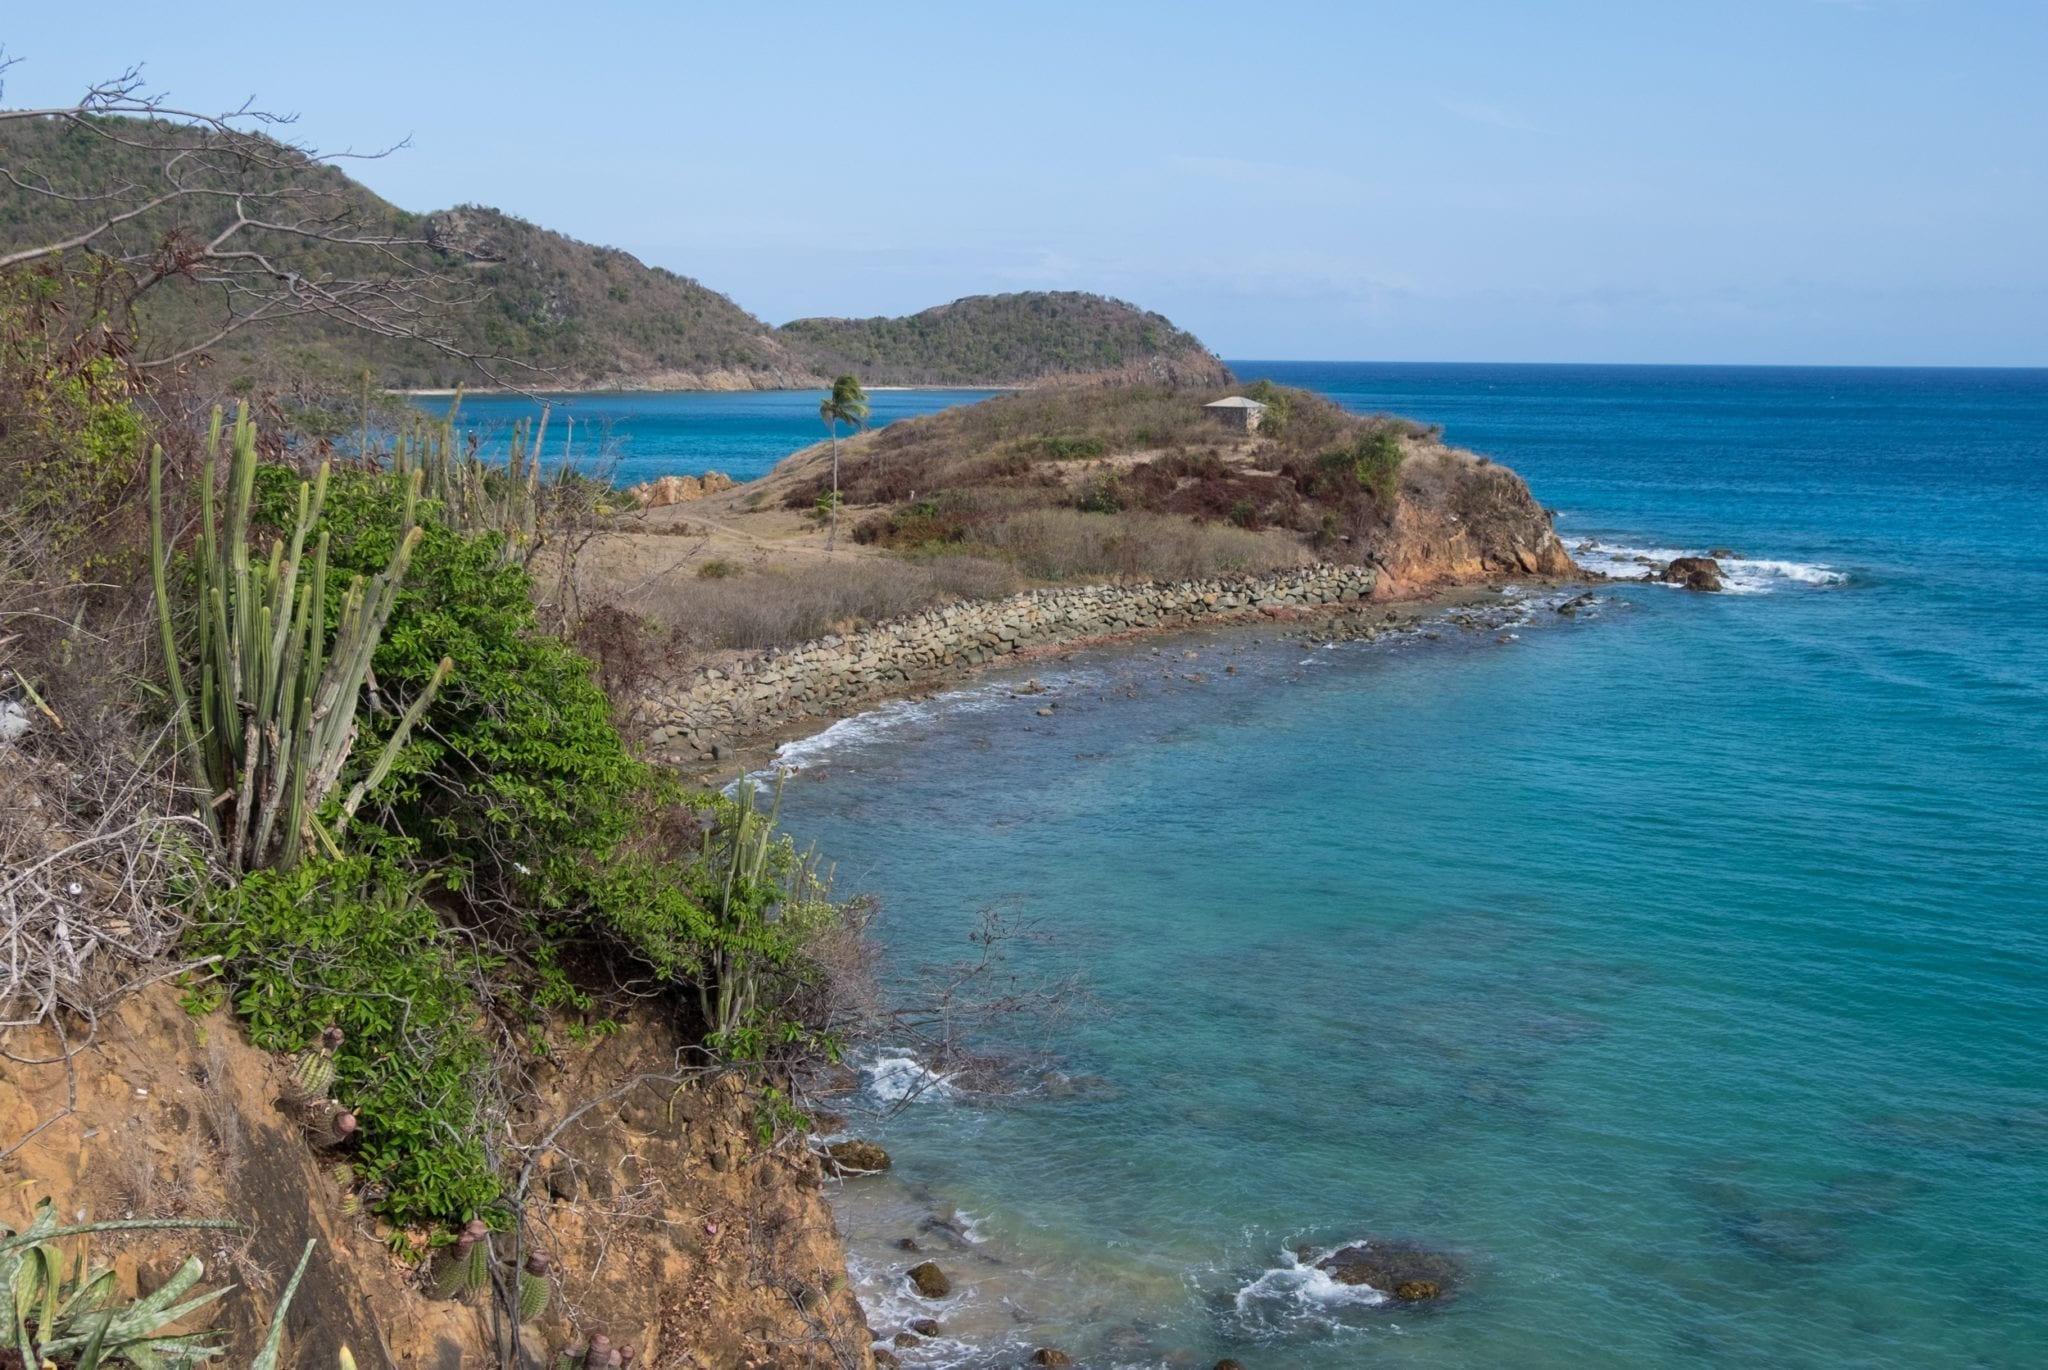 View from a cliff in Antigua: a peninsula rises out into the bright teal sea on the right, while a grove of cacti grows on the left.